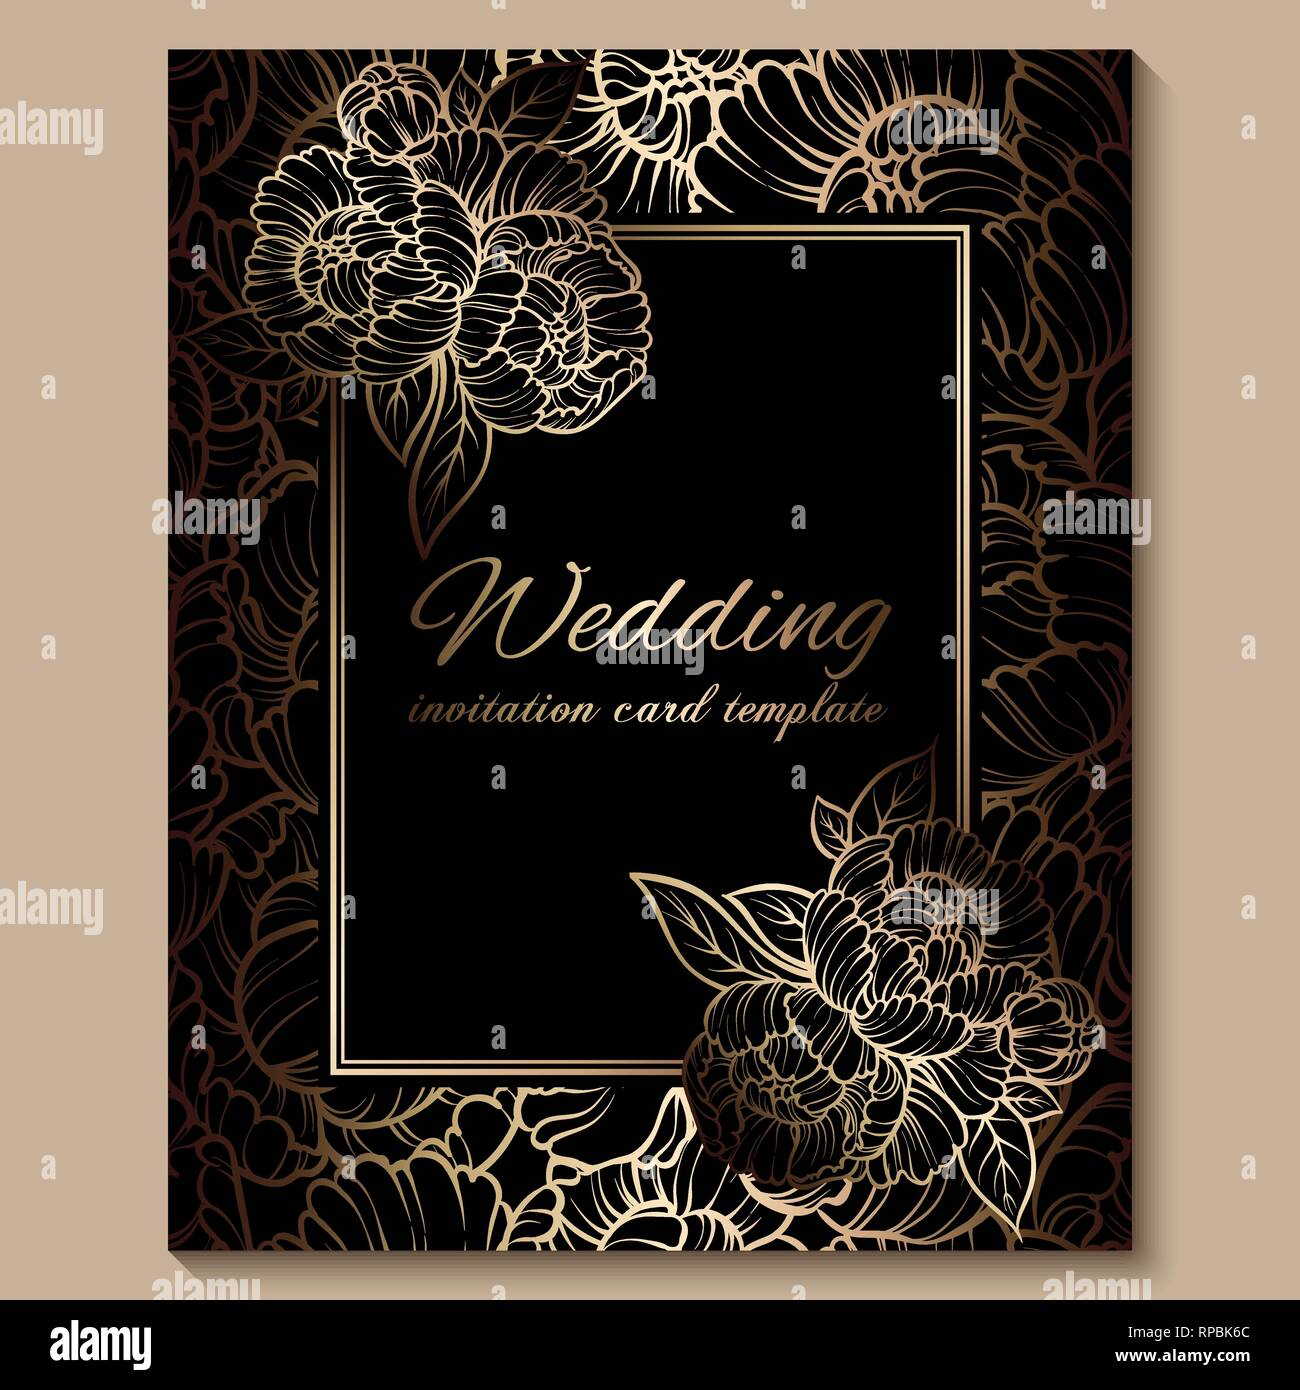 Antique royal luxury wedding invitation, gold on black background with  frame and place for text, lacy foliage made of roses or peonies with shiny  grad Stock Vector Image & Art - Alamy